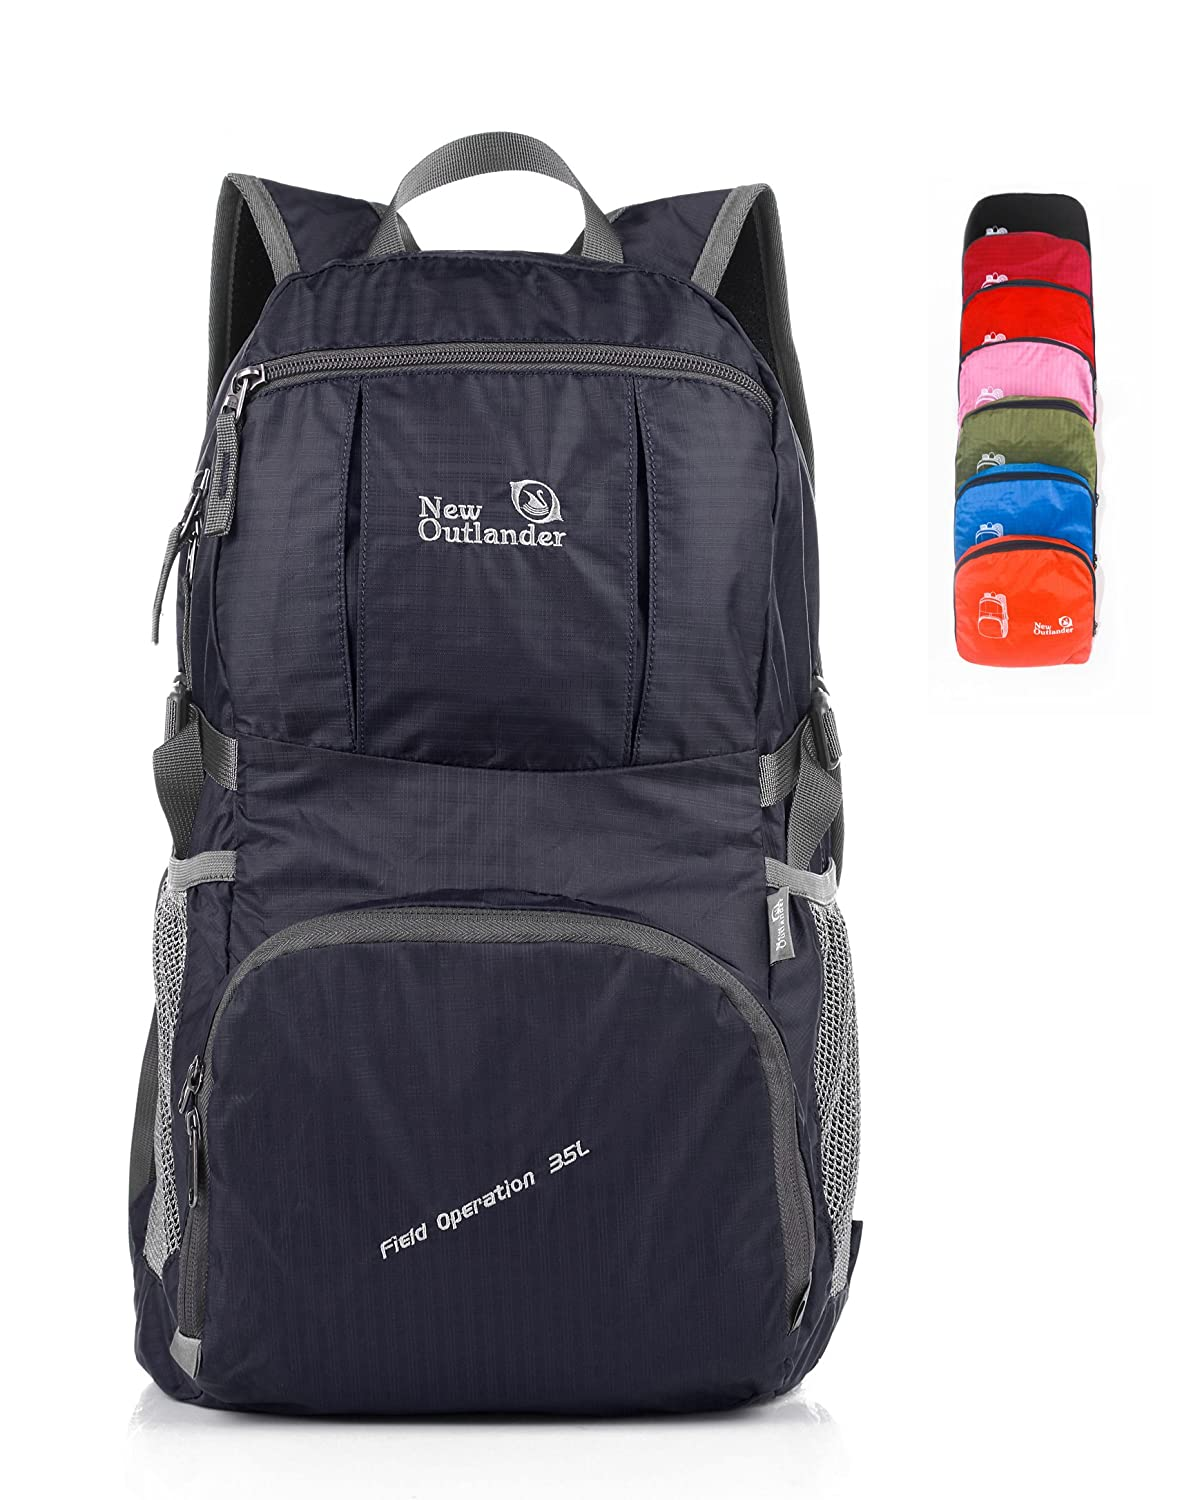 LARGE! 30L! Outlander Packable Handy Lightweight Travel Backpack Daypack+Lifetime Warranty